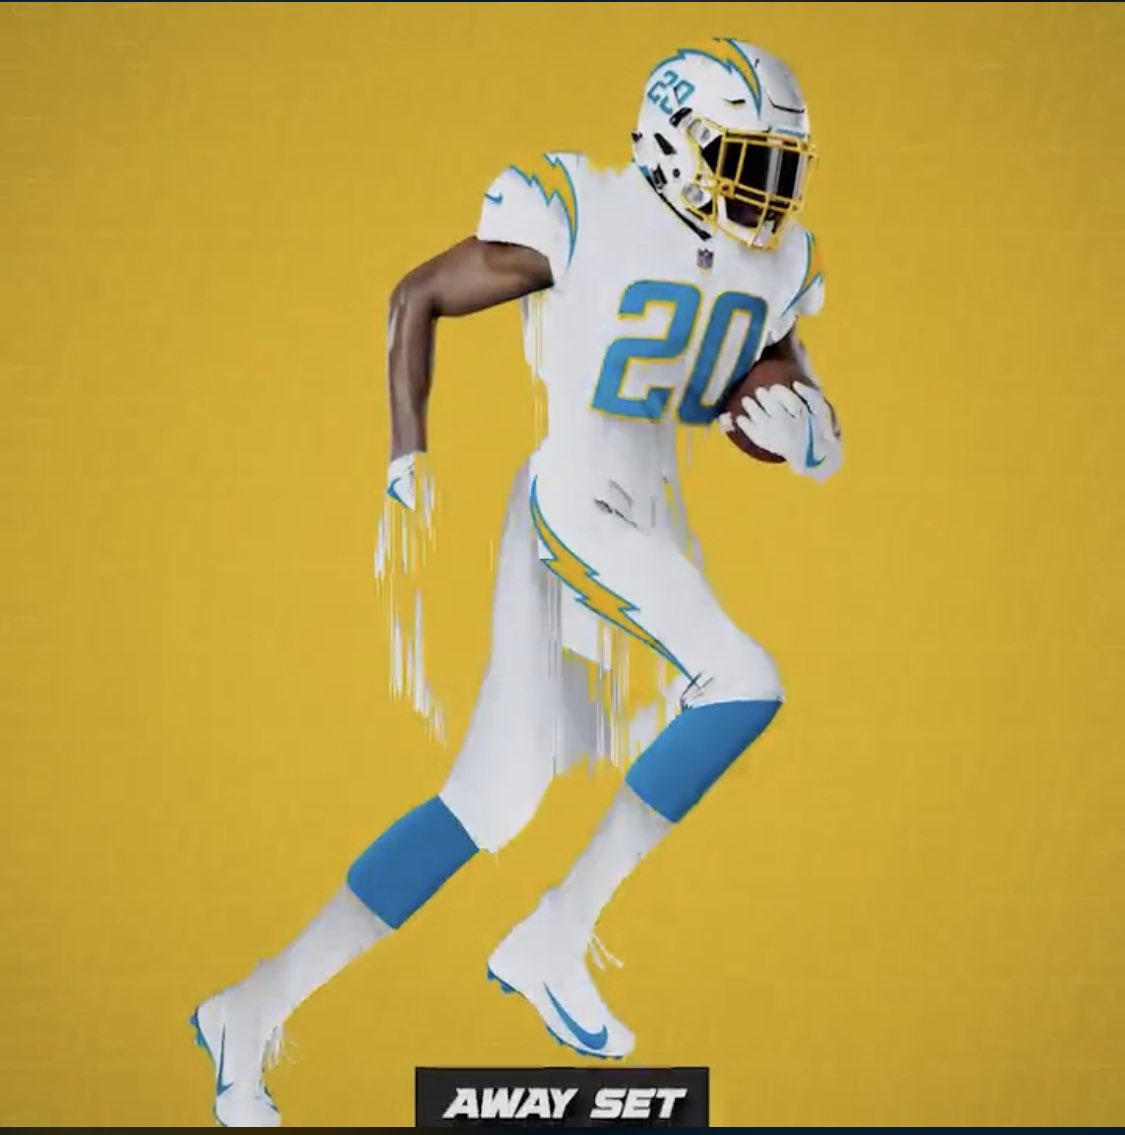 The Chargers reveal their new uniforms. https://t.co/FwZRB2yGzu